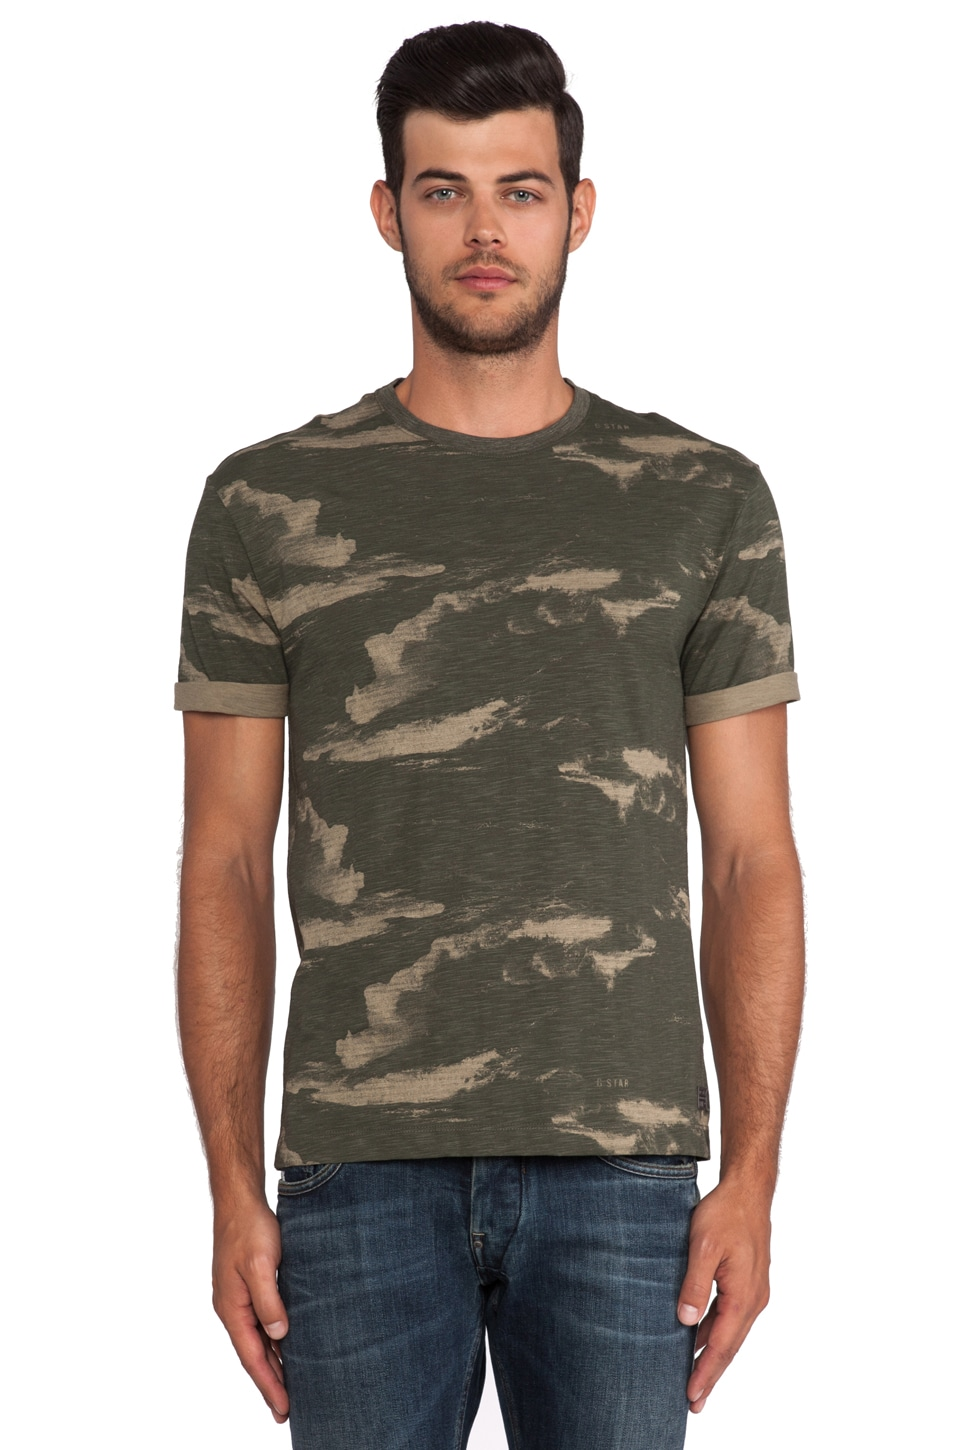 G-Star Troupman Camo Tee in Combat